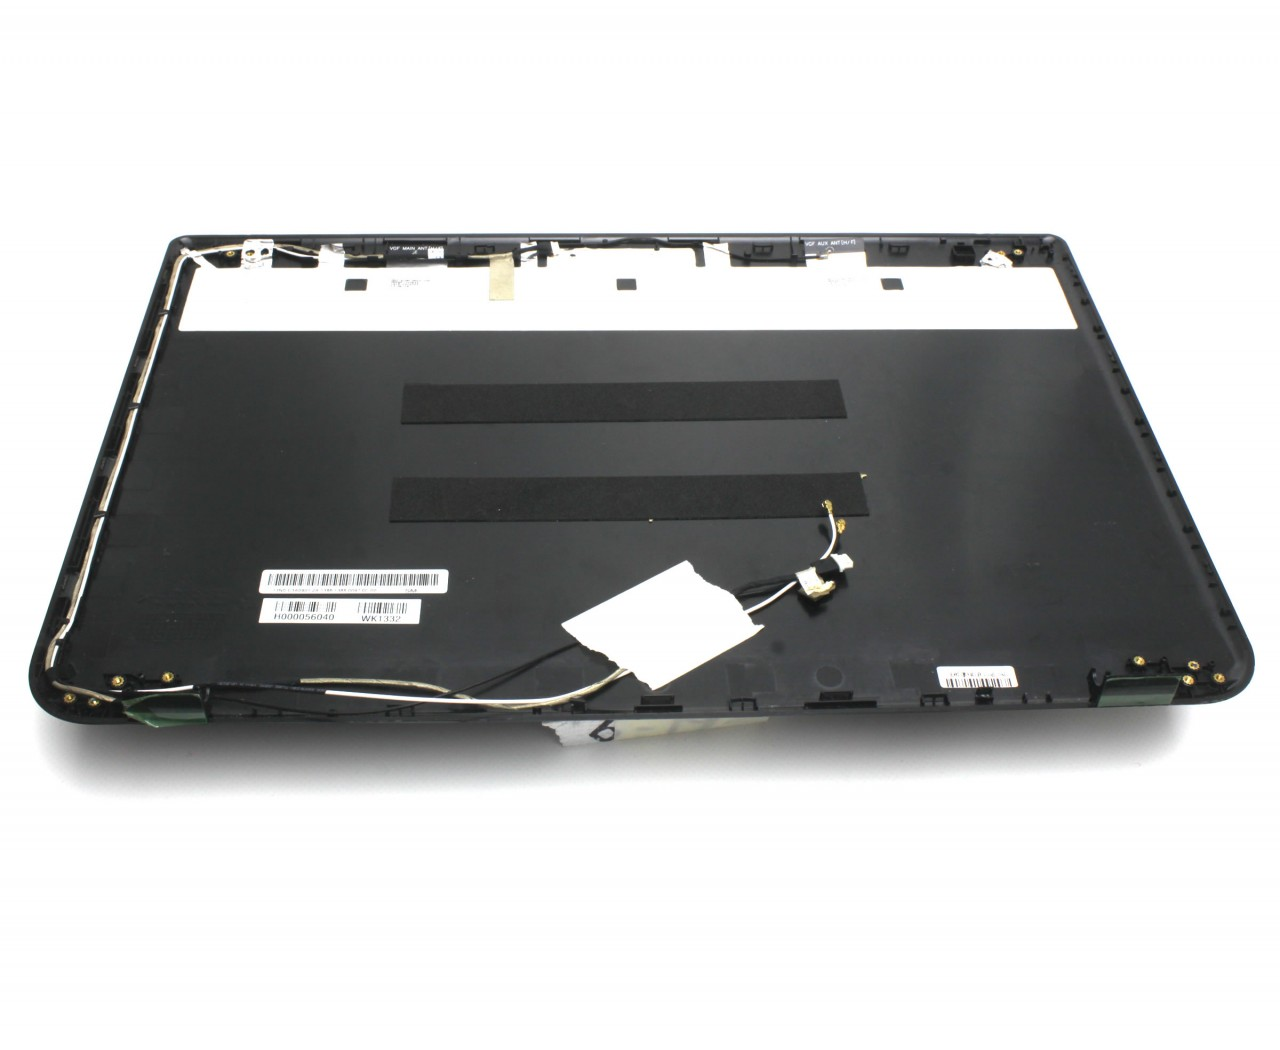 Capac Display BackCover Toshiba H000056040 Carcasa Display Neagra imagine powerlaptop.ro 2021